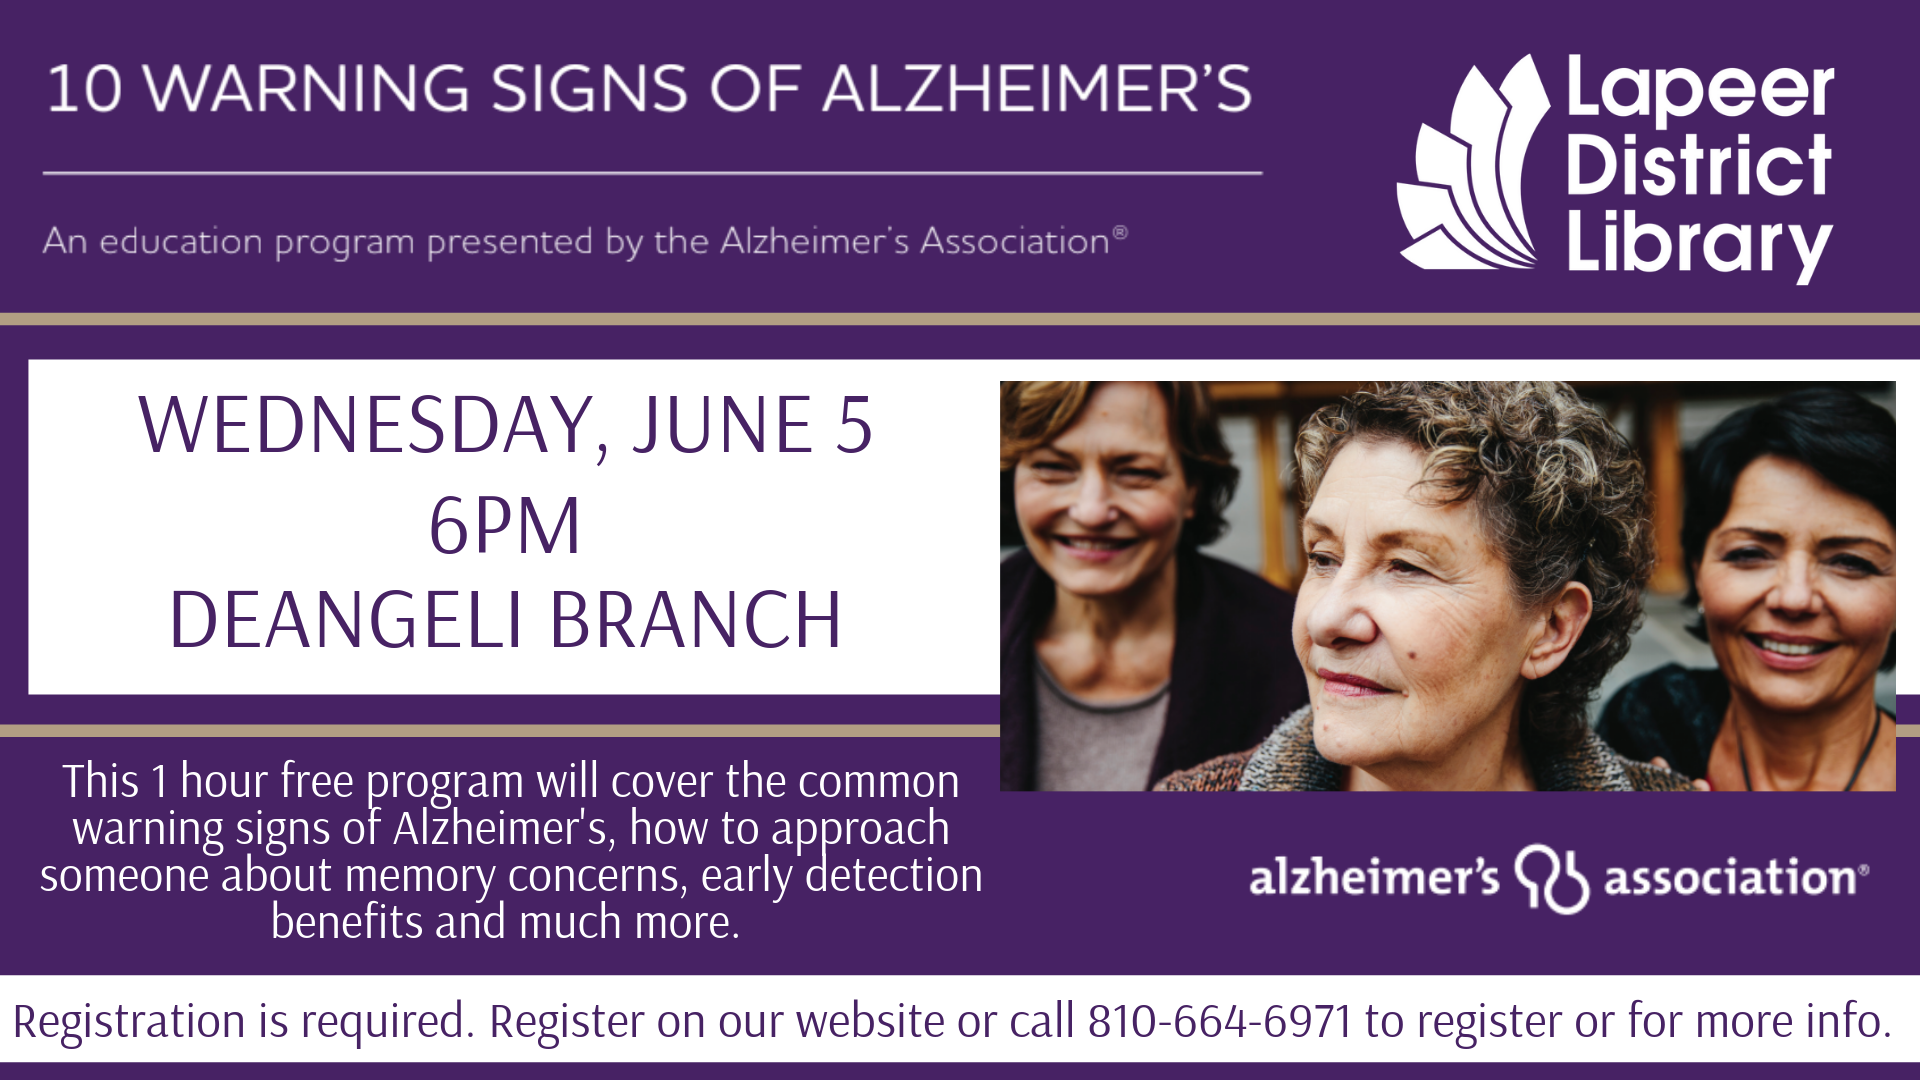 10 Warning Signs of Alzheimer's Presented by the Alzheimer's Association